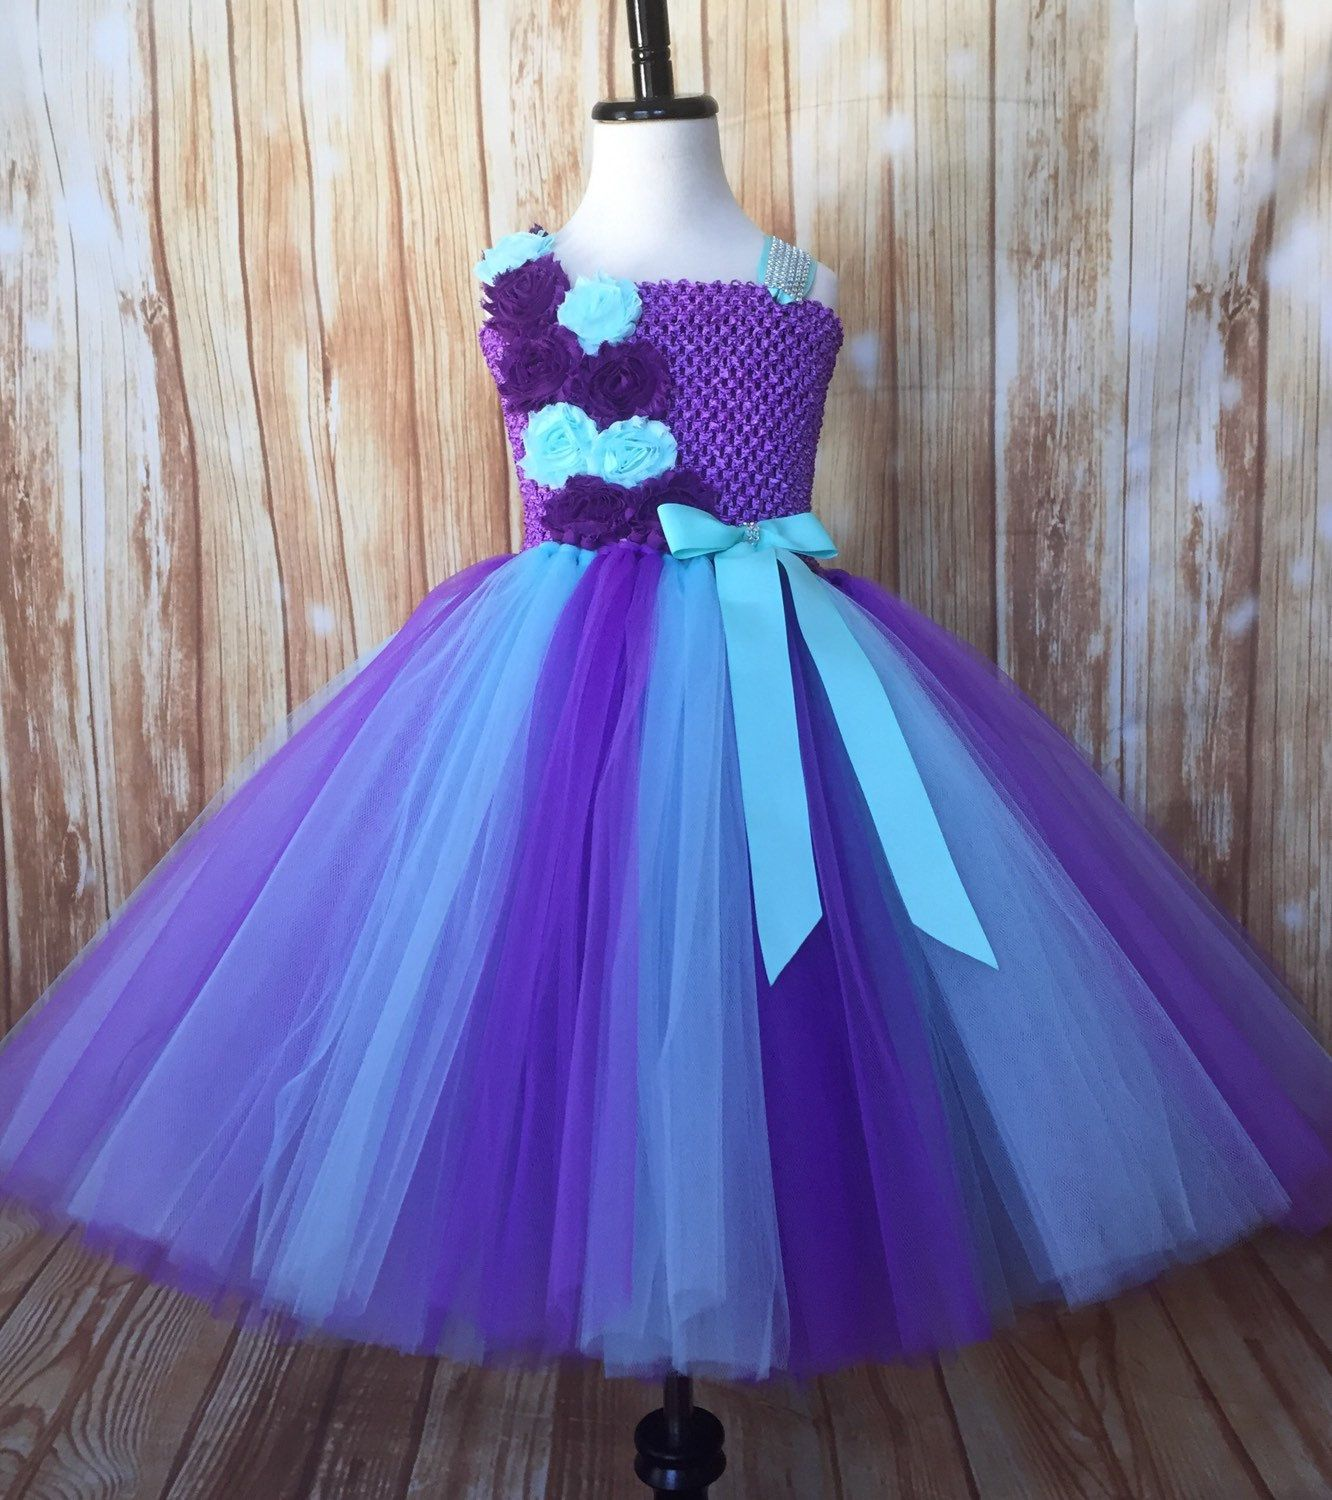 Purple And Aqua Tulle Tutu Dress Embellished With Shabby Flowers And A Touch Of Bling Flower Girl Flower Girl Dresses Tutu Tutus For Girls Flower Girl Tutu [ 1500 x 1332 Pixel ]